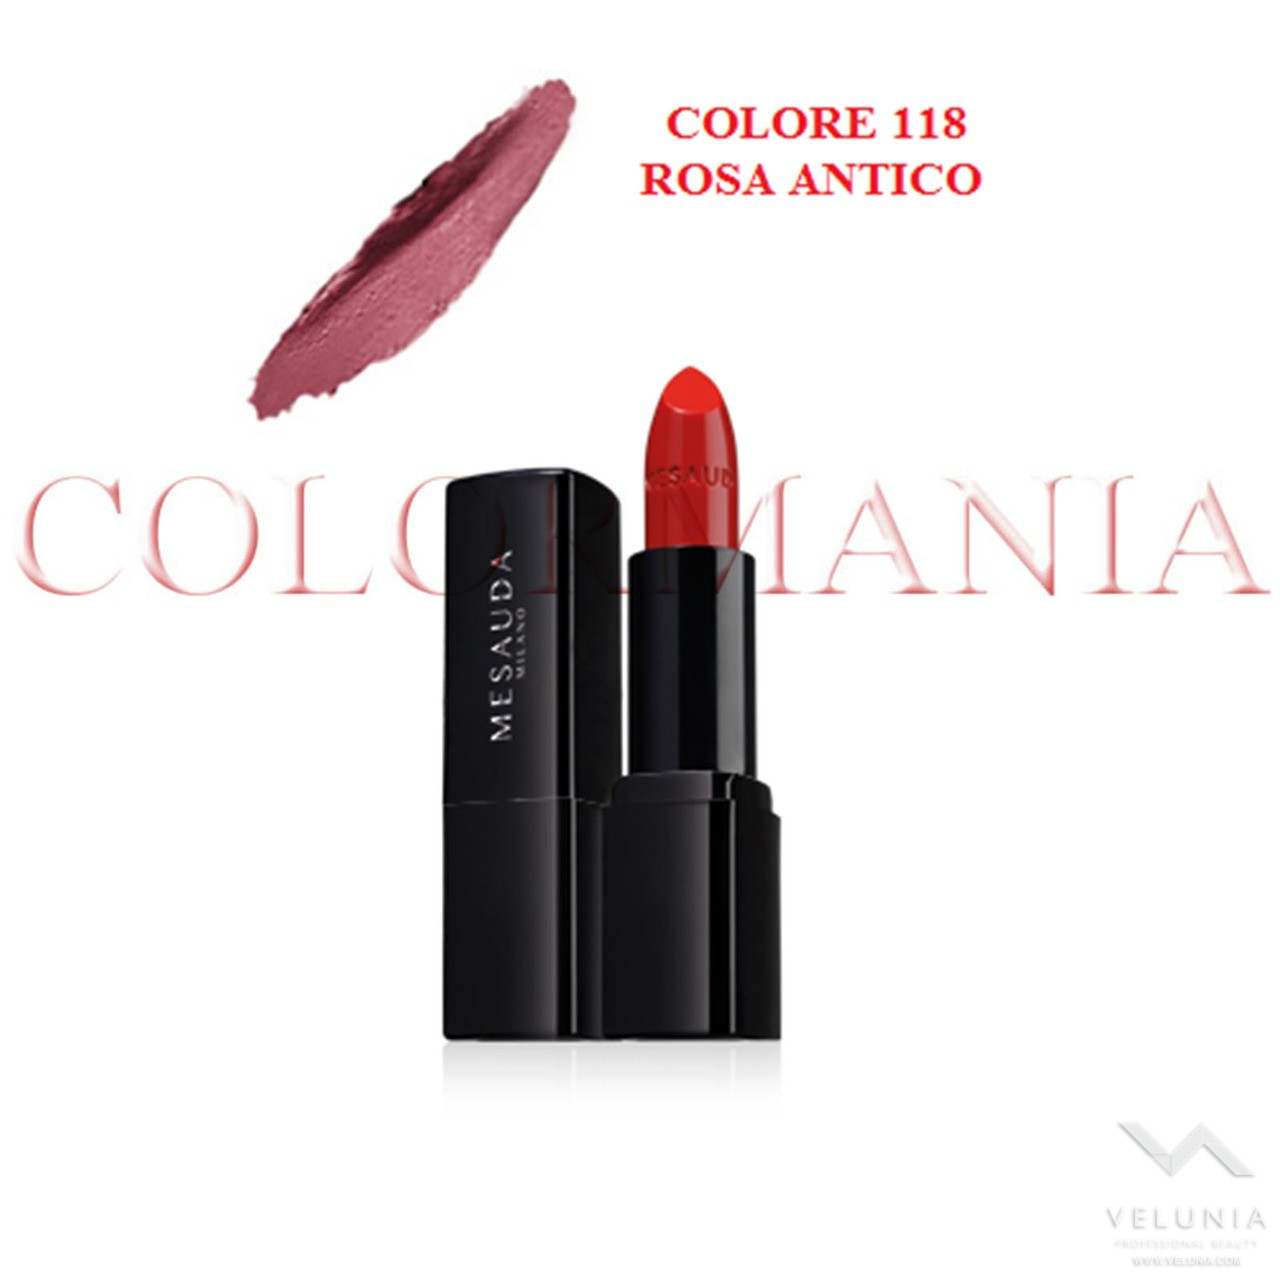 MESAUDA BACKSTAGE ROSSETTO LUCIDO BRILLANTE LUMINOSO  PROFESSIONALE COLORE 118 ROSA ANTICO 1